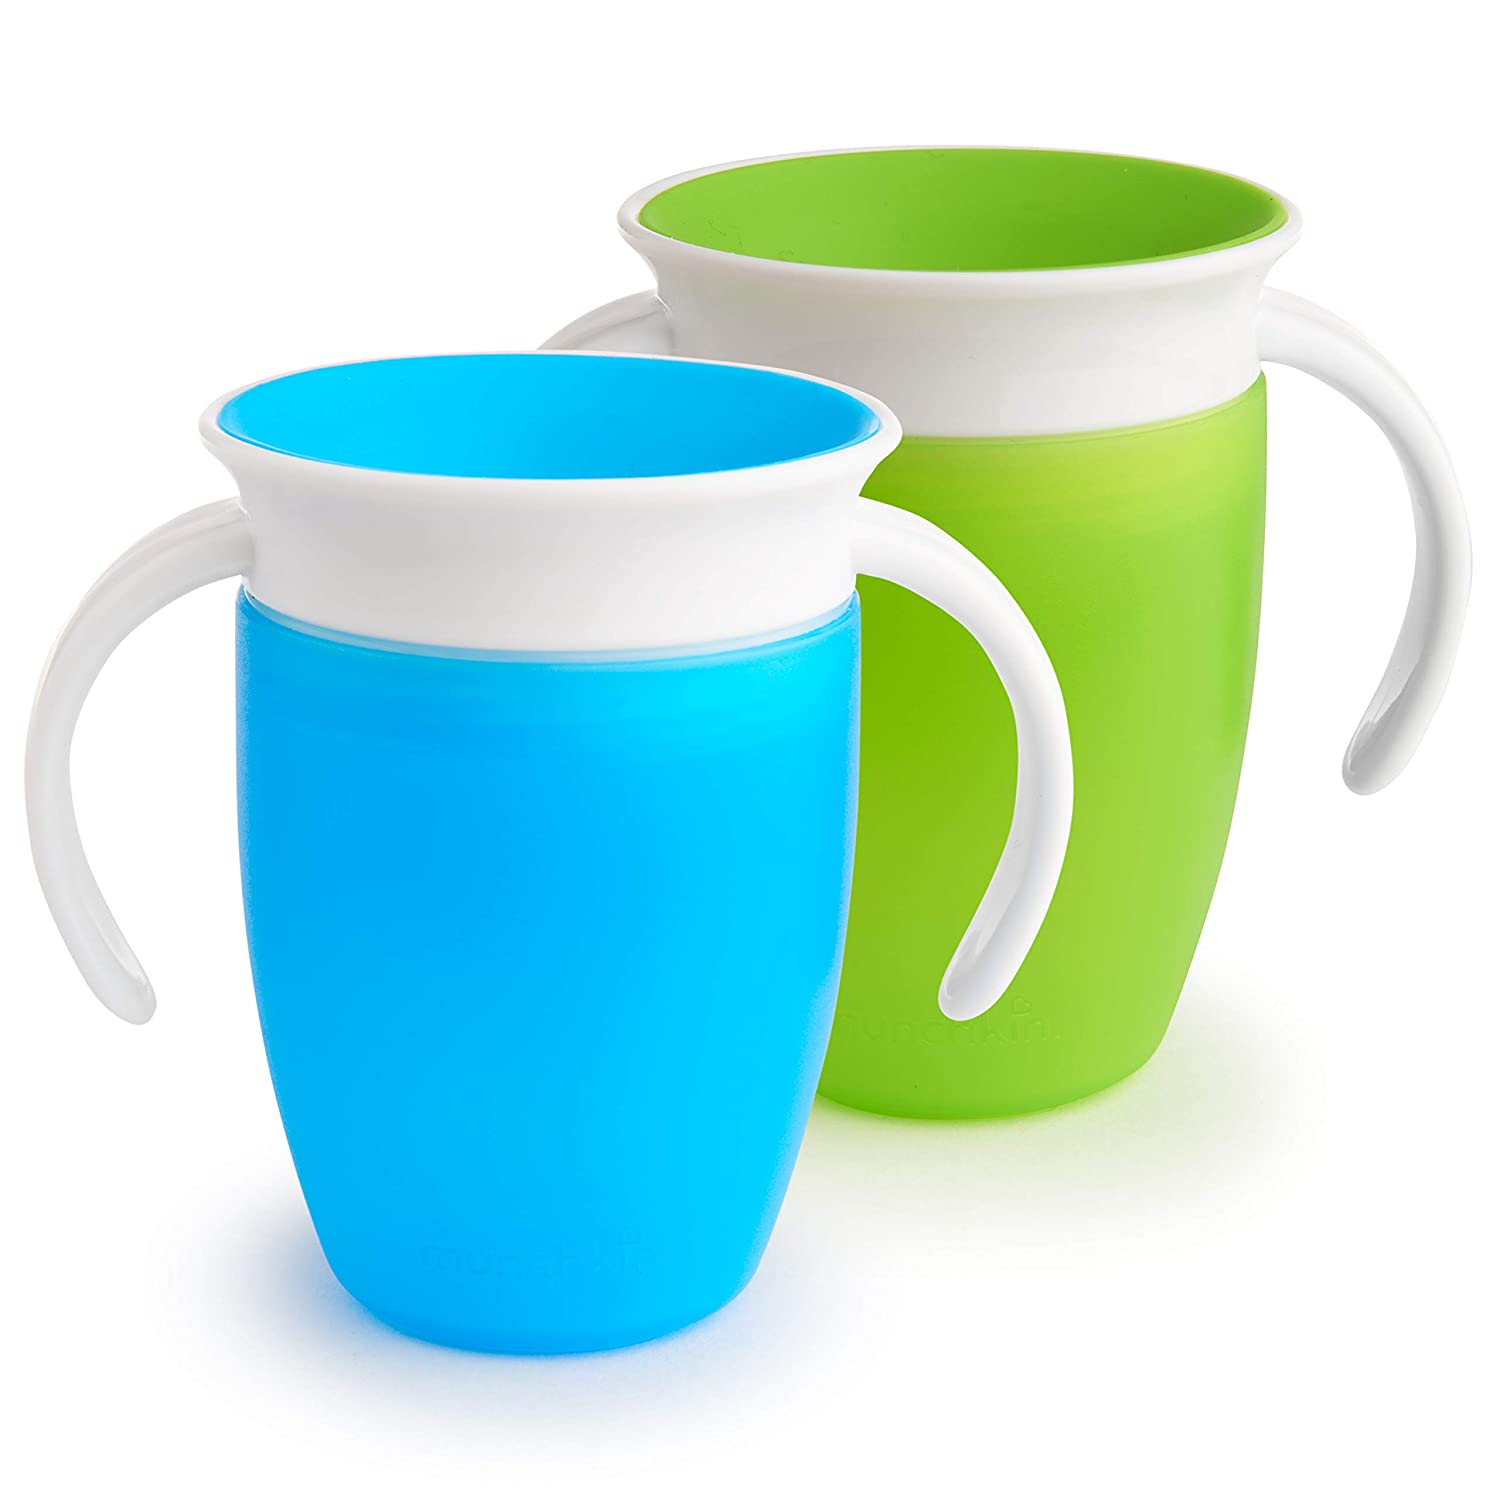 Munchkin Miracle 360 Trainer Cup, Green/Blue, 7 Oz, 2 Count : Baby